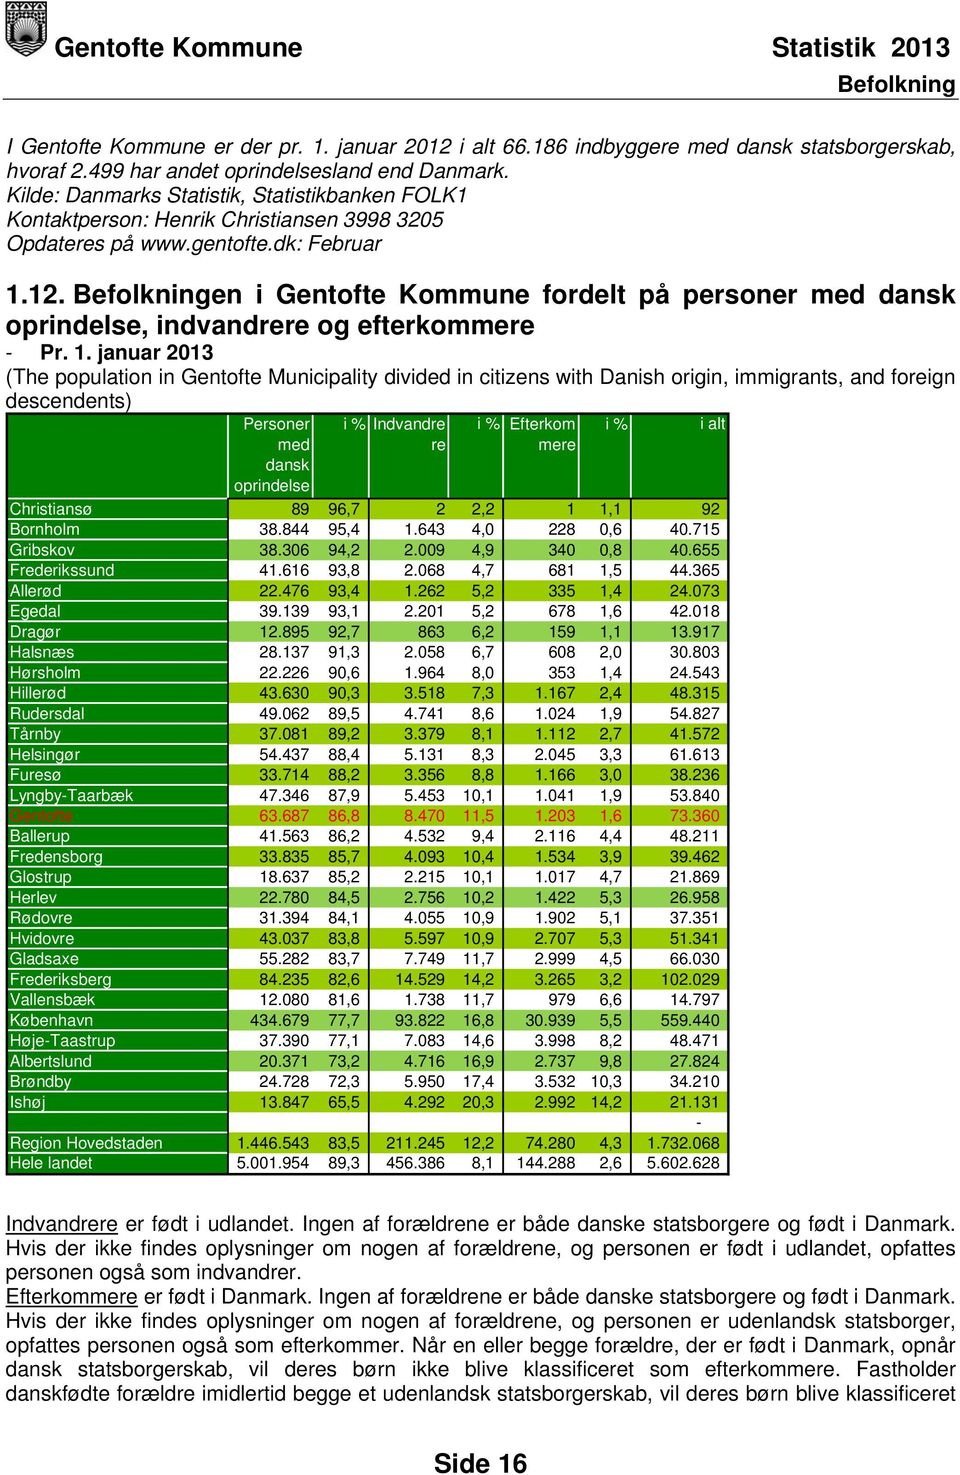 1. januar 2013 (The population in Gentofte Municipality divided in citizens with Danish origin, immigrants, and foreign descendents) Personer med dansk oprindelse i % Indvandre i % Efterkom i % re